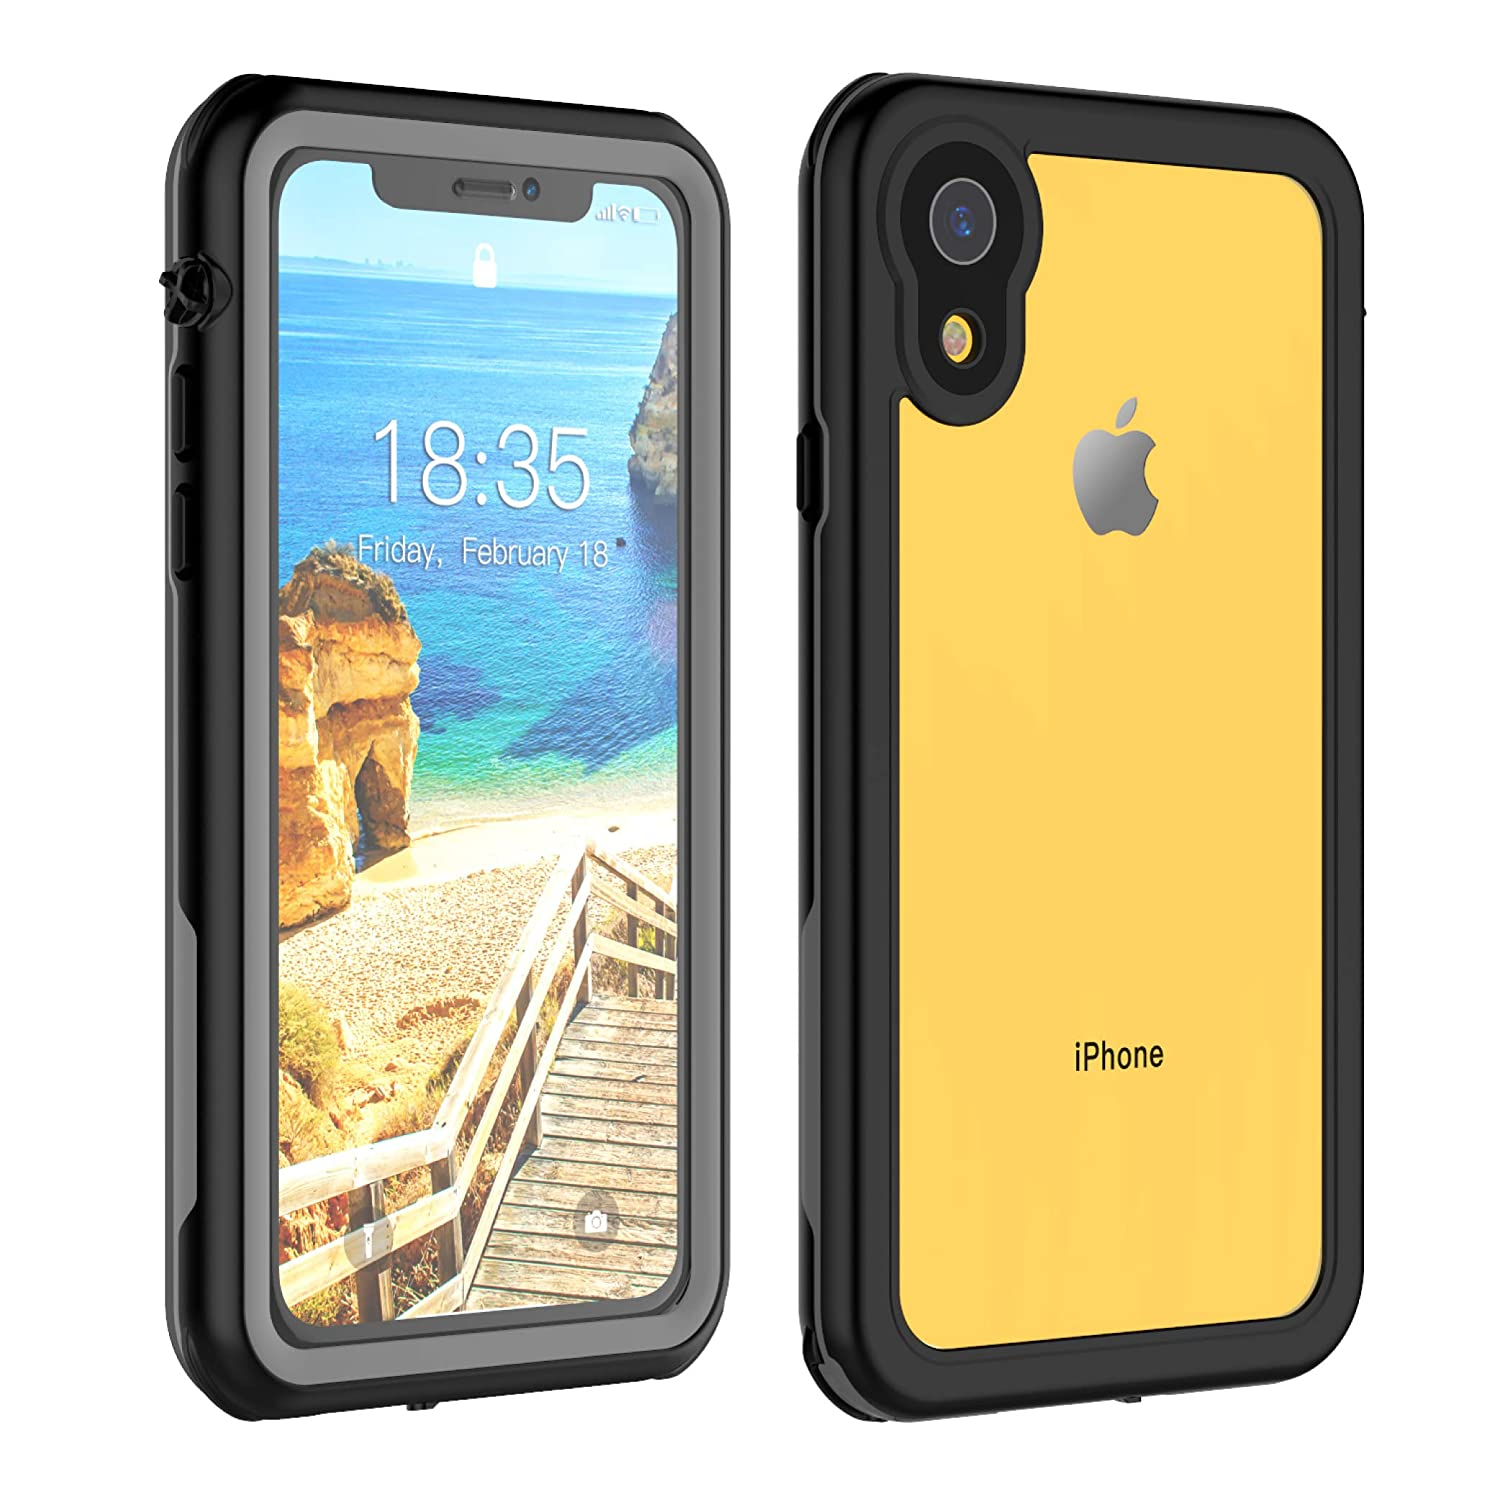 huge selection of 68a42 a48df iPhone XR Waterproof Case 6.1 inch, Full Body Protective with Built-in  Screen Protector Clear Waterproof Case for iPhone Xr Case 6.1 Inch 2018.